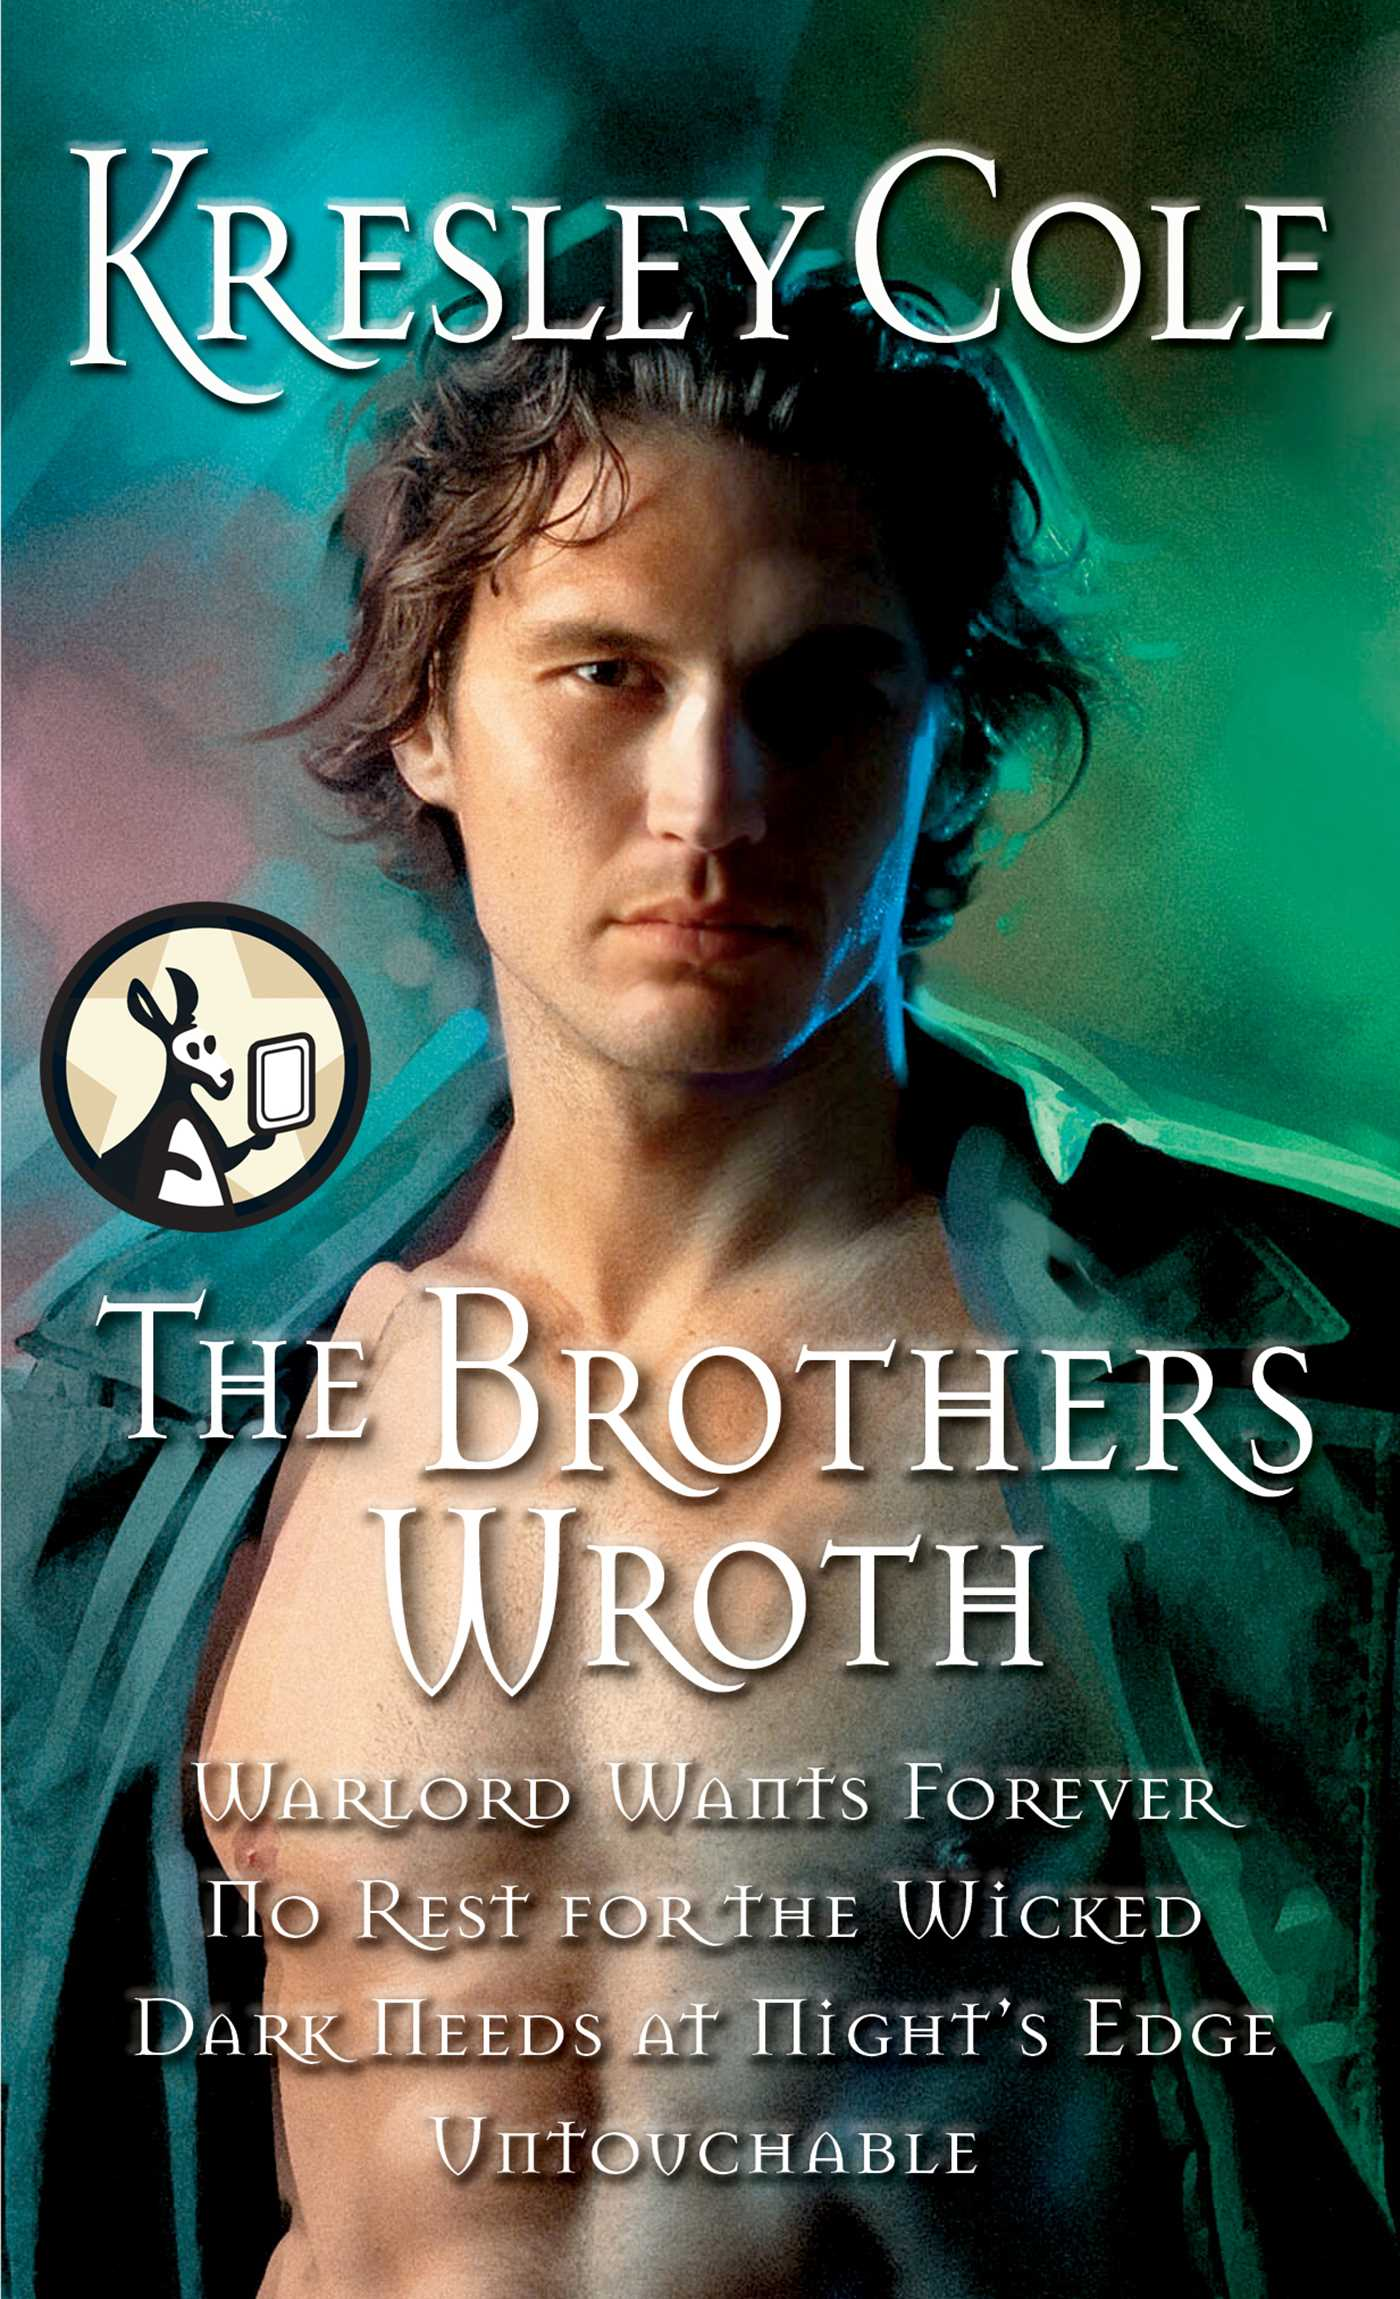 The-brothers-wroth-9781451687187_hr